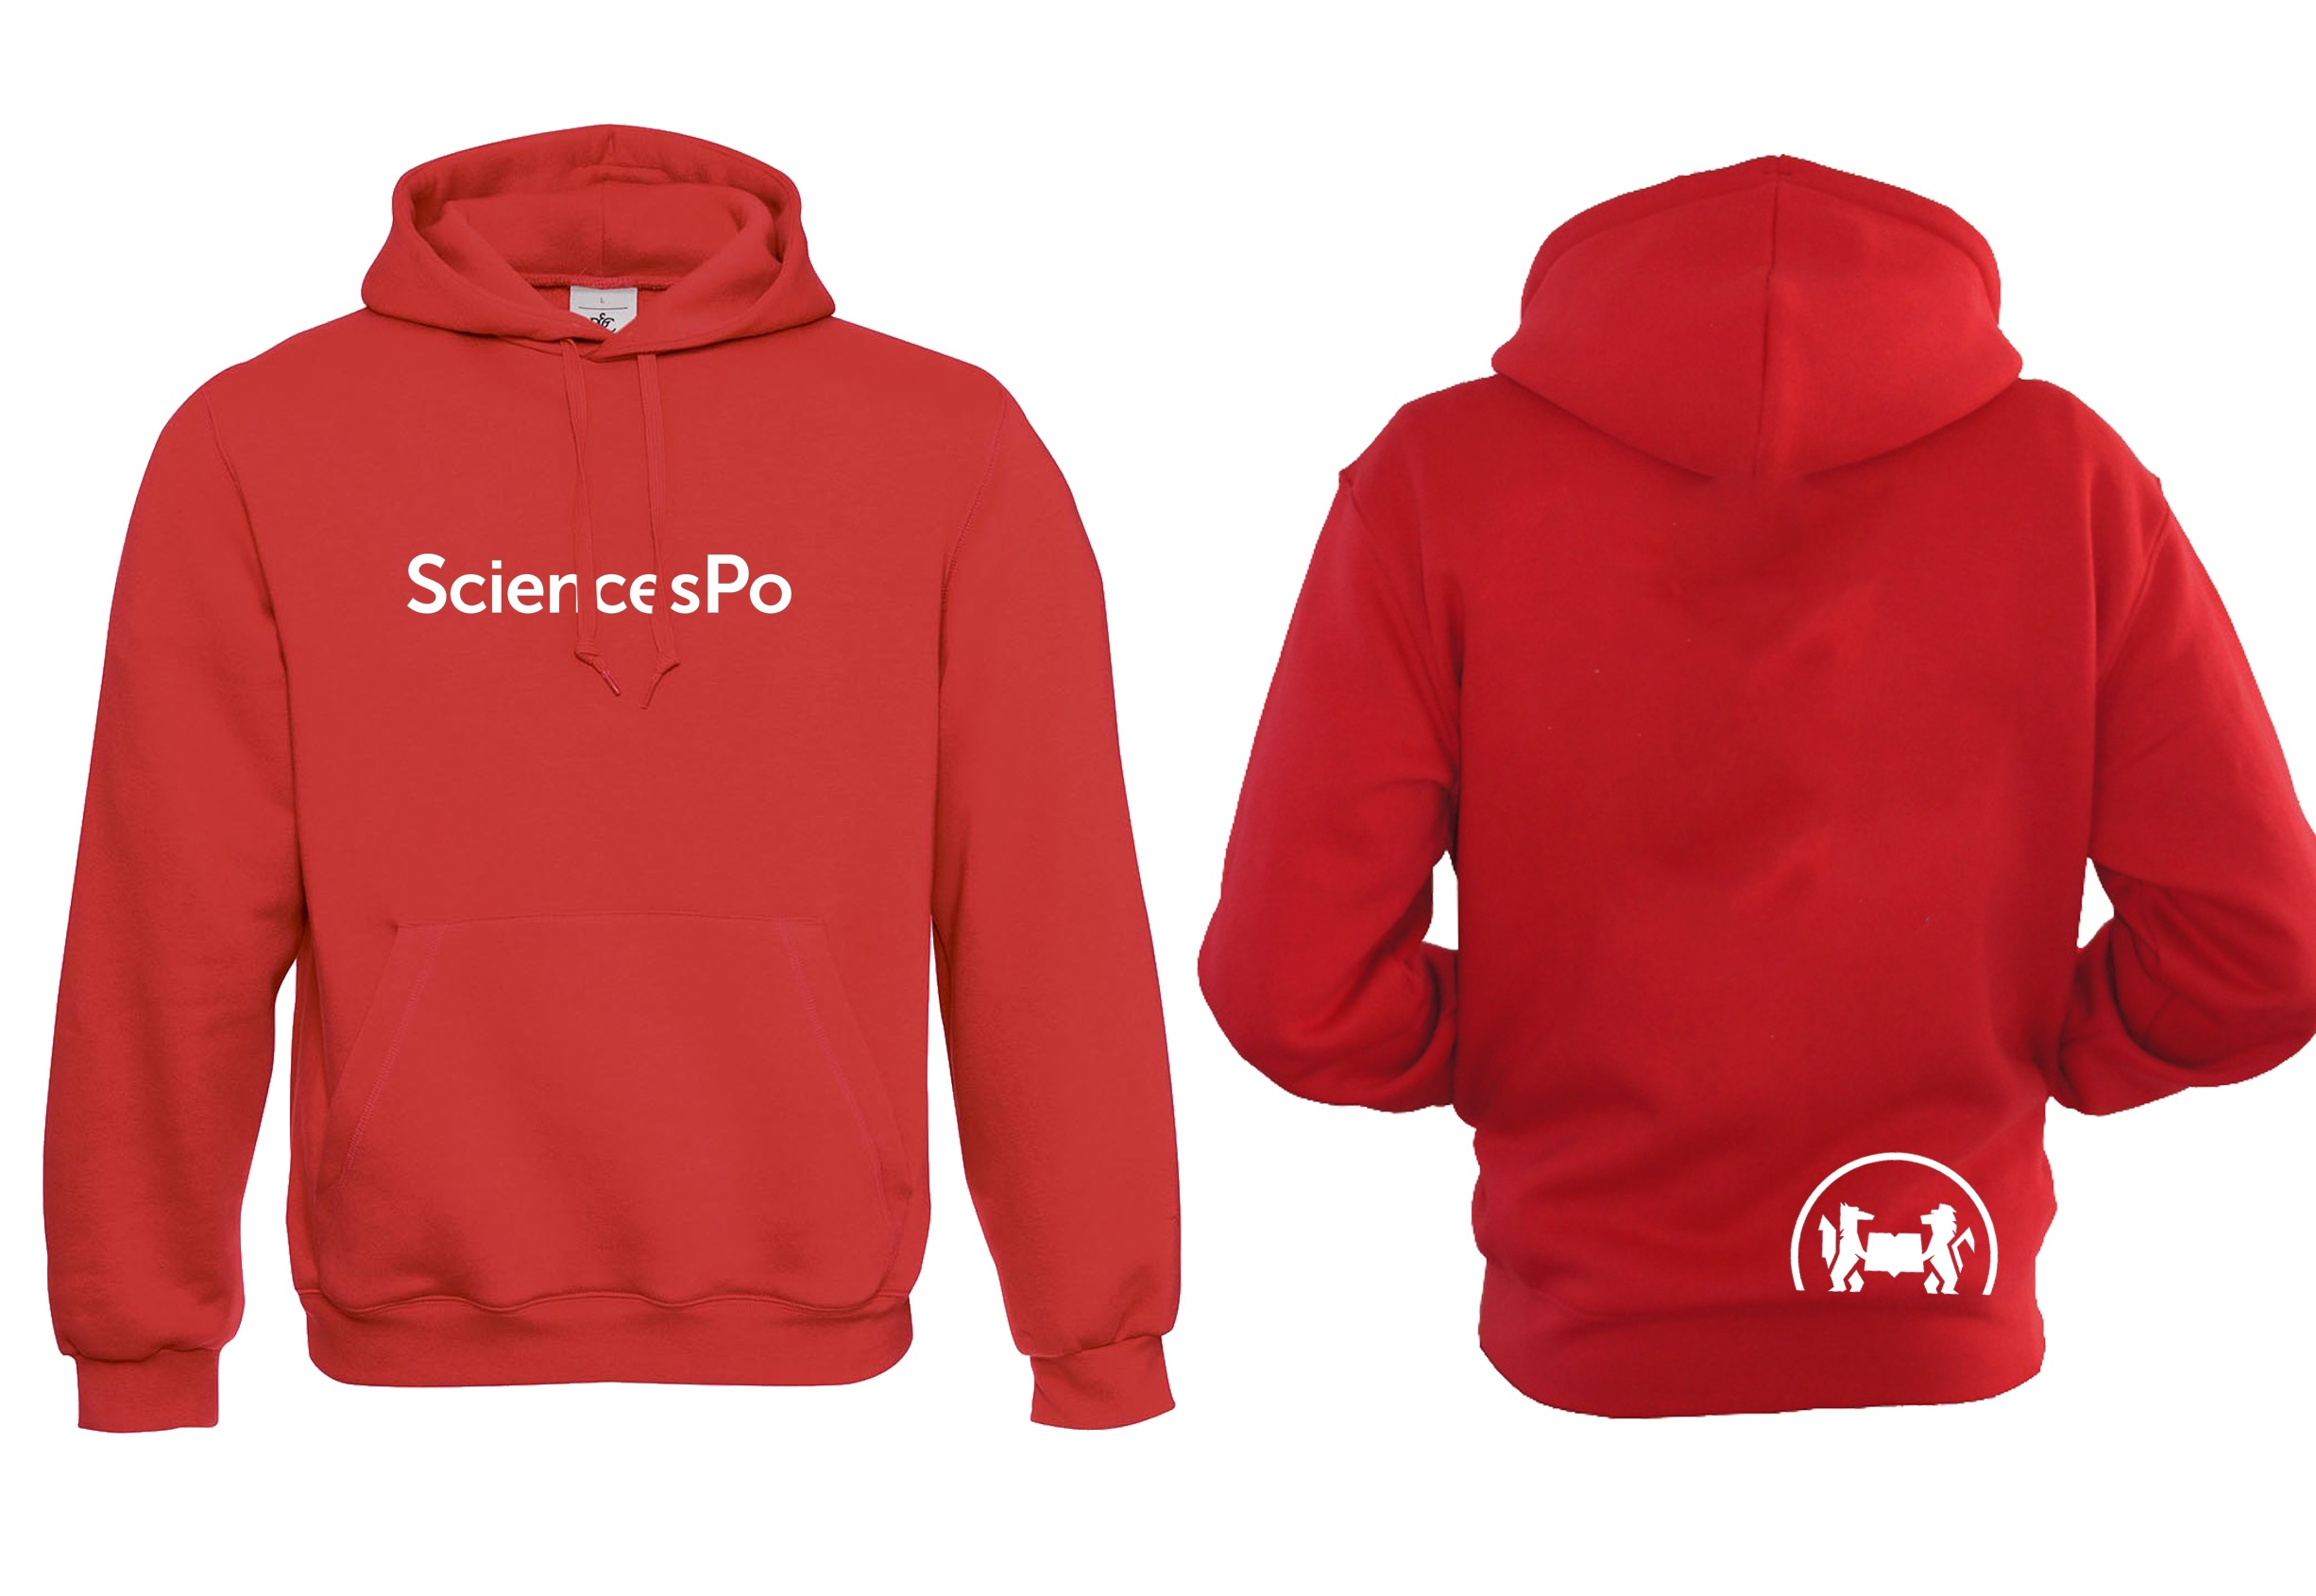 SWEAT (9-11 ANS) EXTRA EXTRA SMALL ROUGE SCIENCES PO UNISEXE